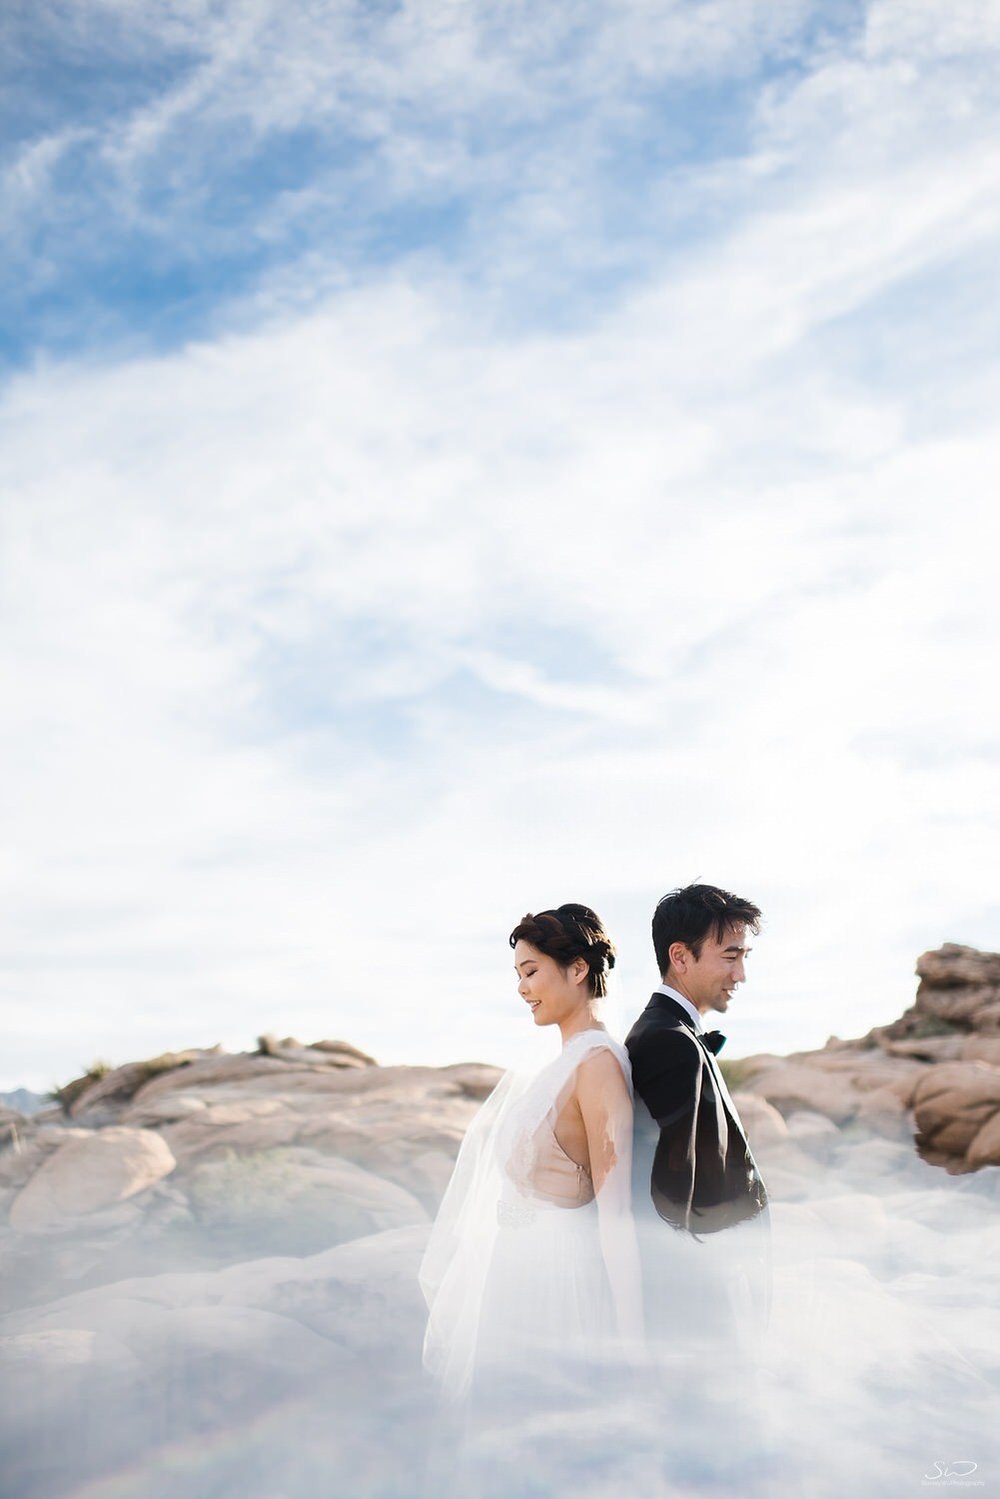 Creative reflection desert portrait of couple | Joshua Tree Desert Wedding, Engagement, Elopement, Adventure Inspiration